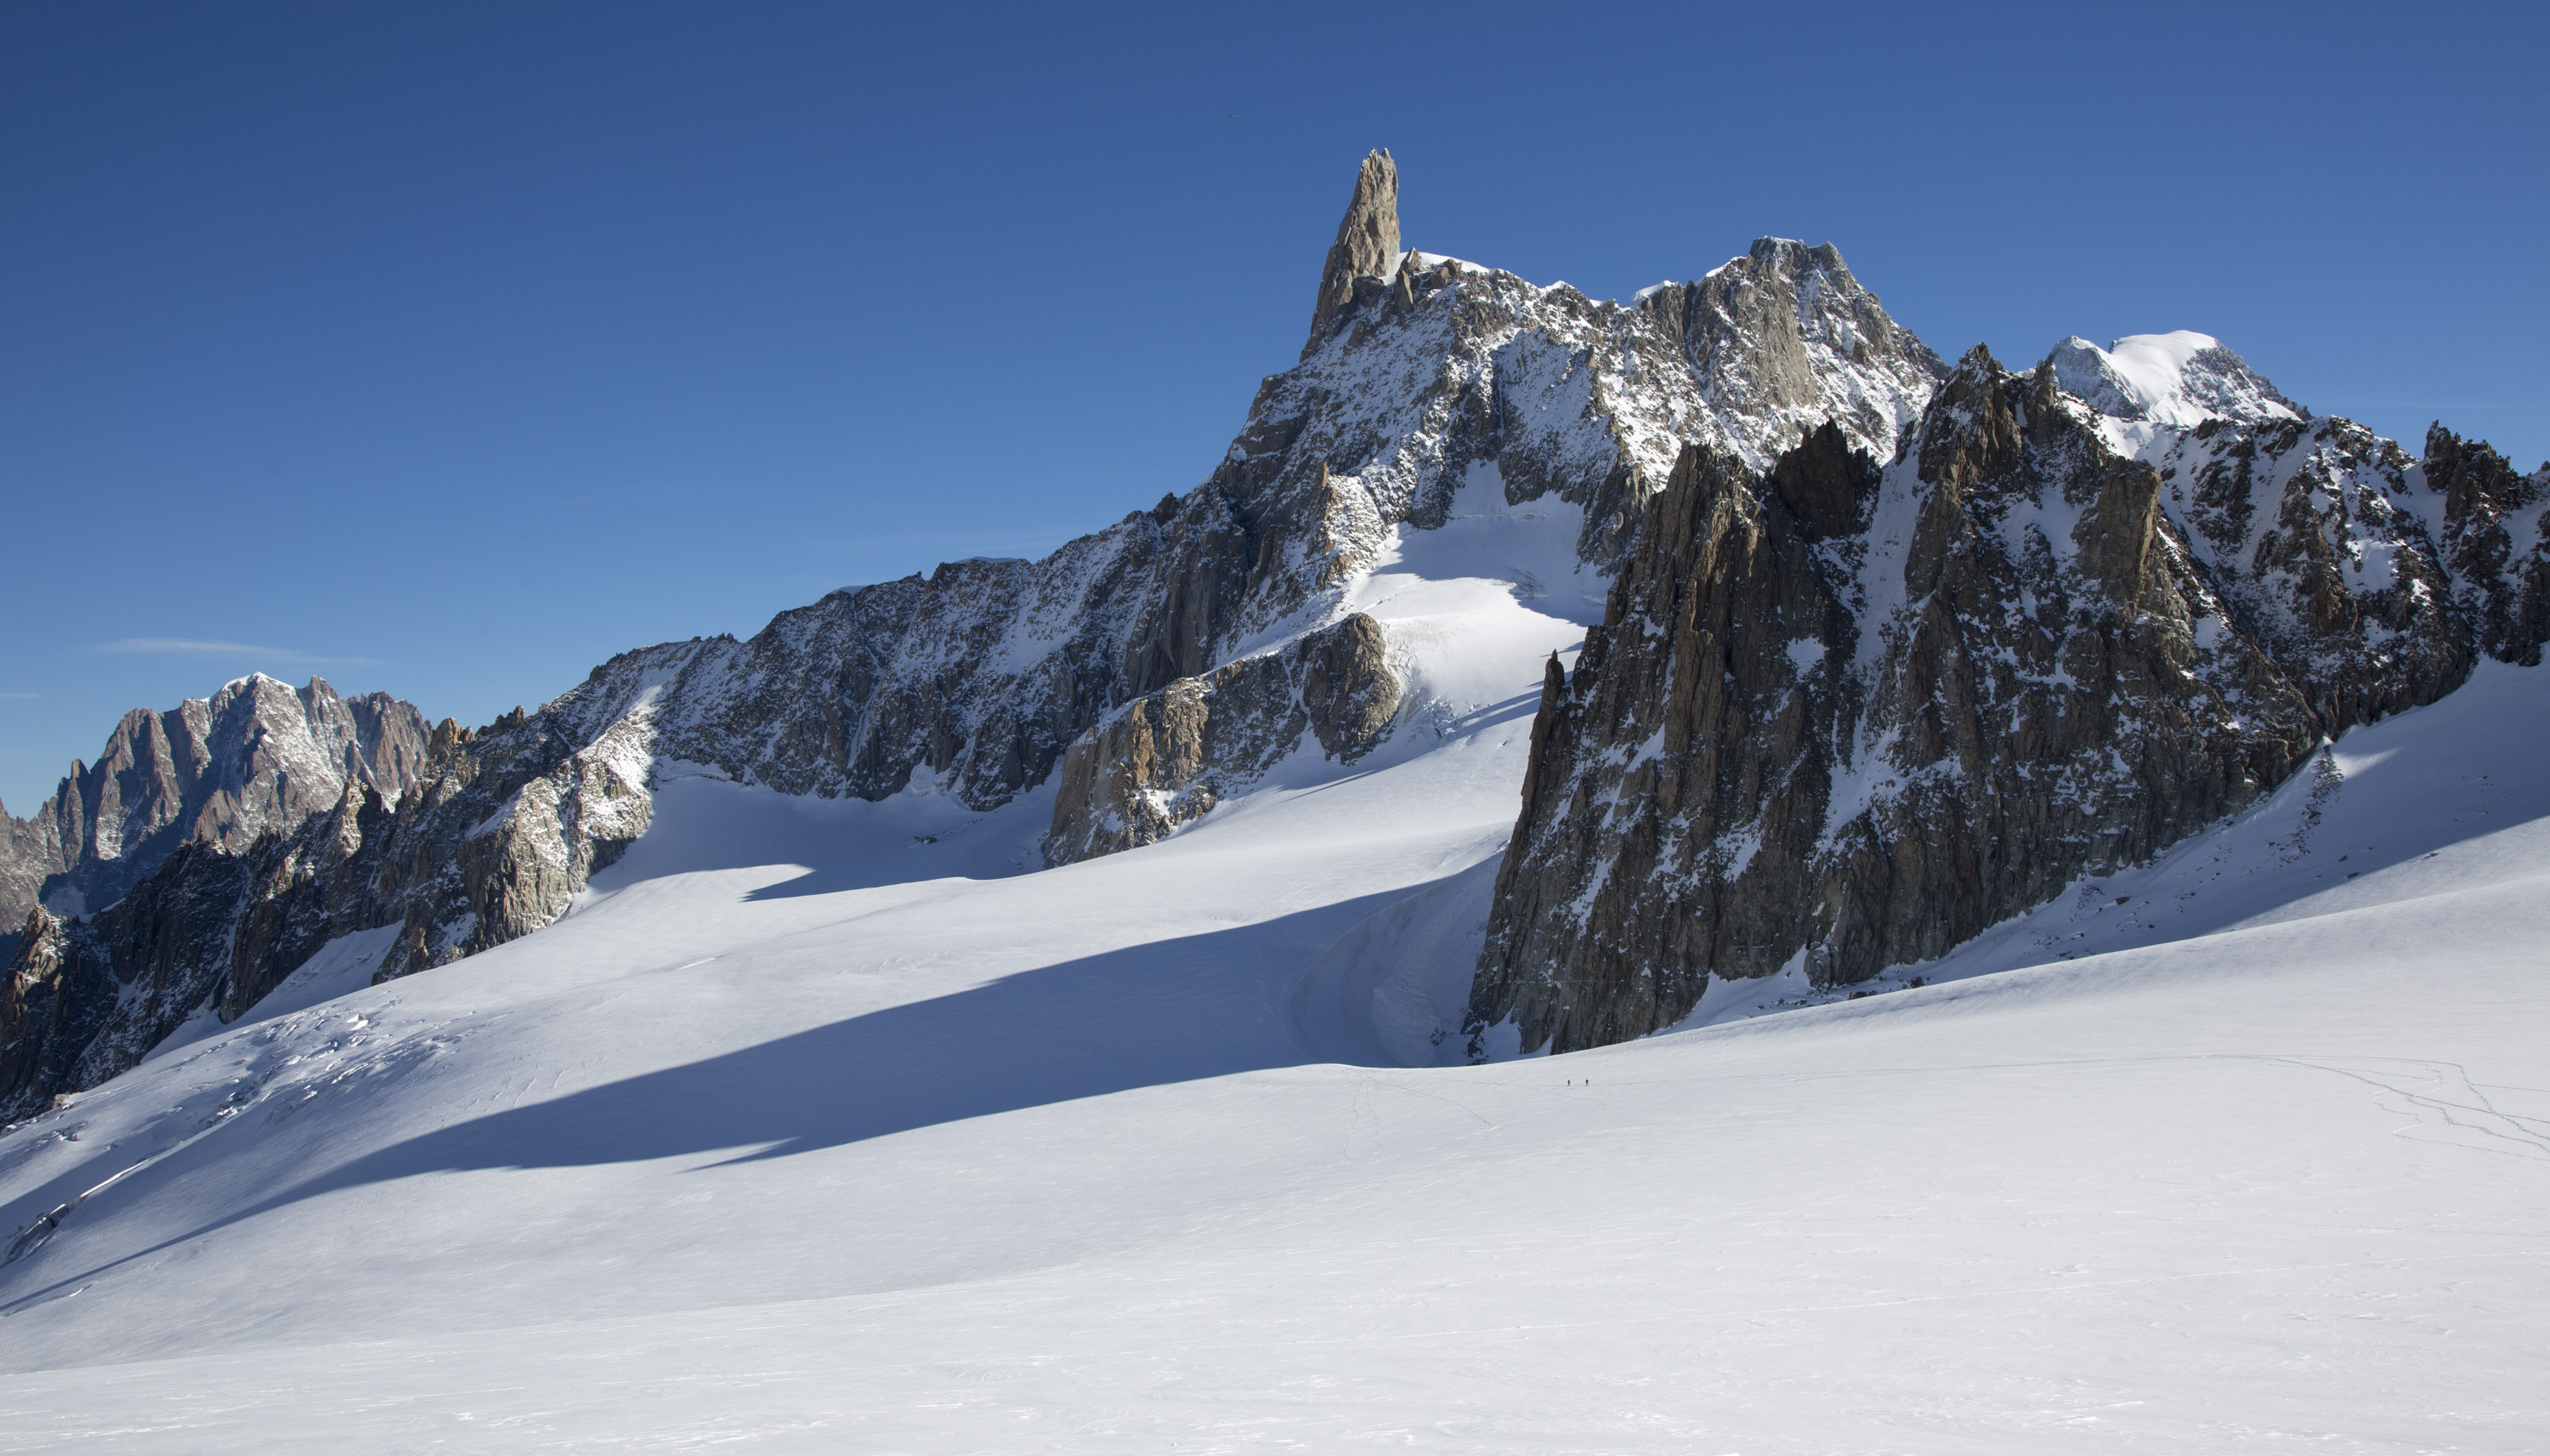 The Dent du Geant taken from the Helbronner Glacier on the Italian side of the Vallee Blanche. Canon 5D MkIII, 24-105 at 32mm, ISO 100, 1/250 sec at f/10. © Stuart Holmes